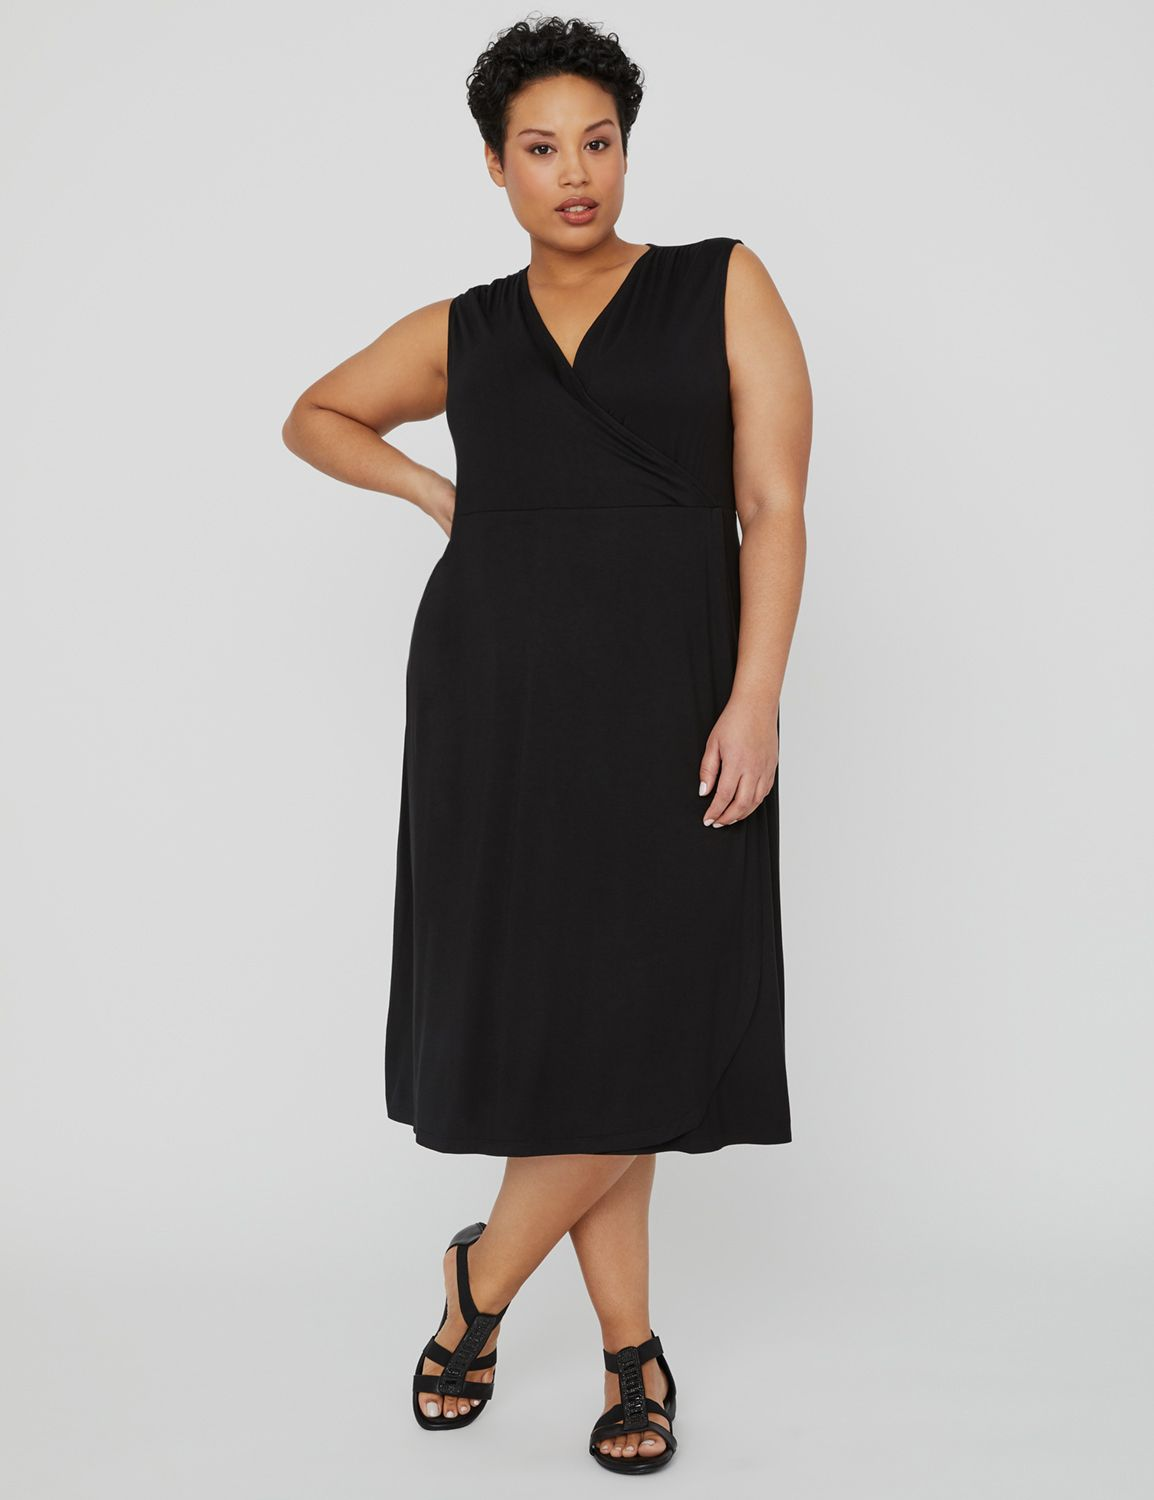 Riverview Wrap Dress 1088151 Vneck Front and Back Maxi E MP-300102368